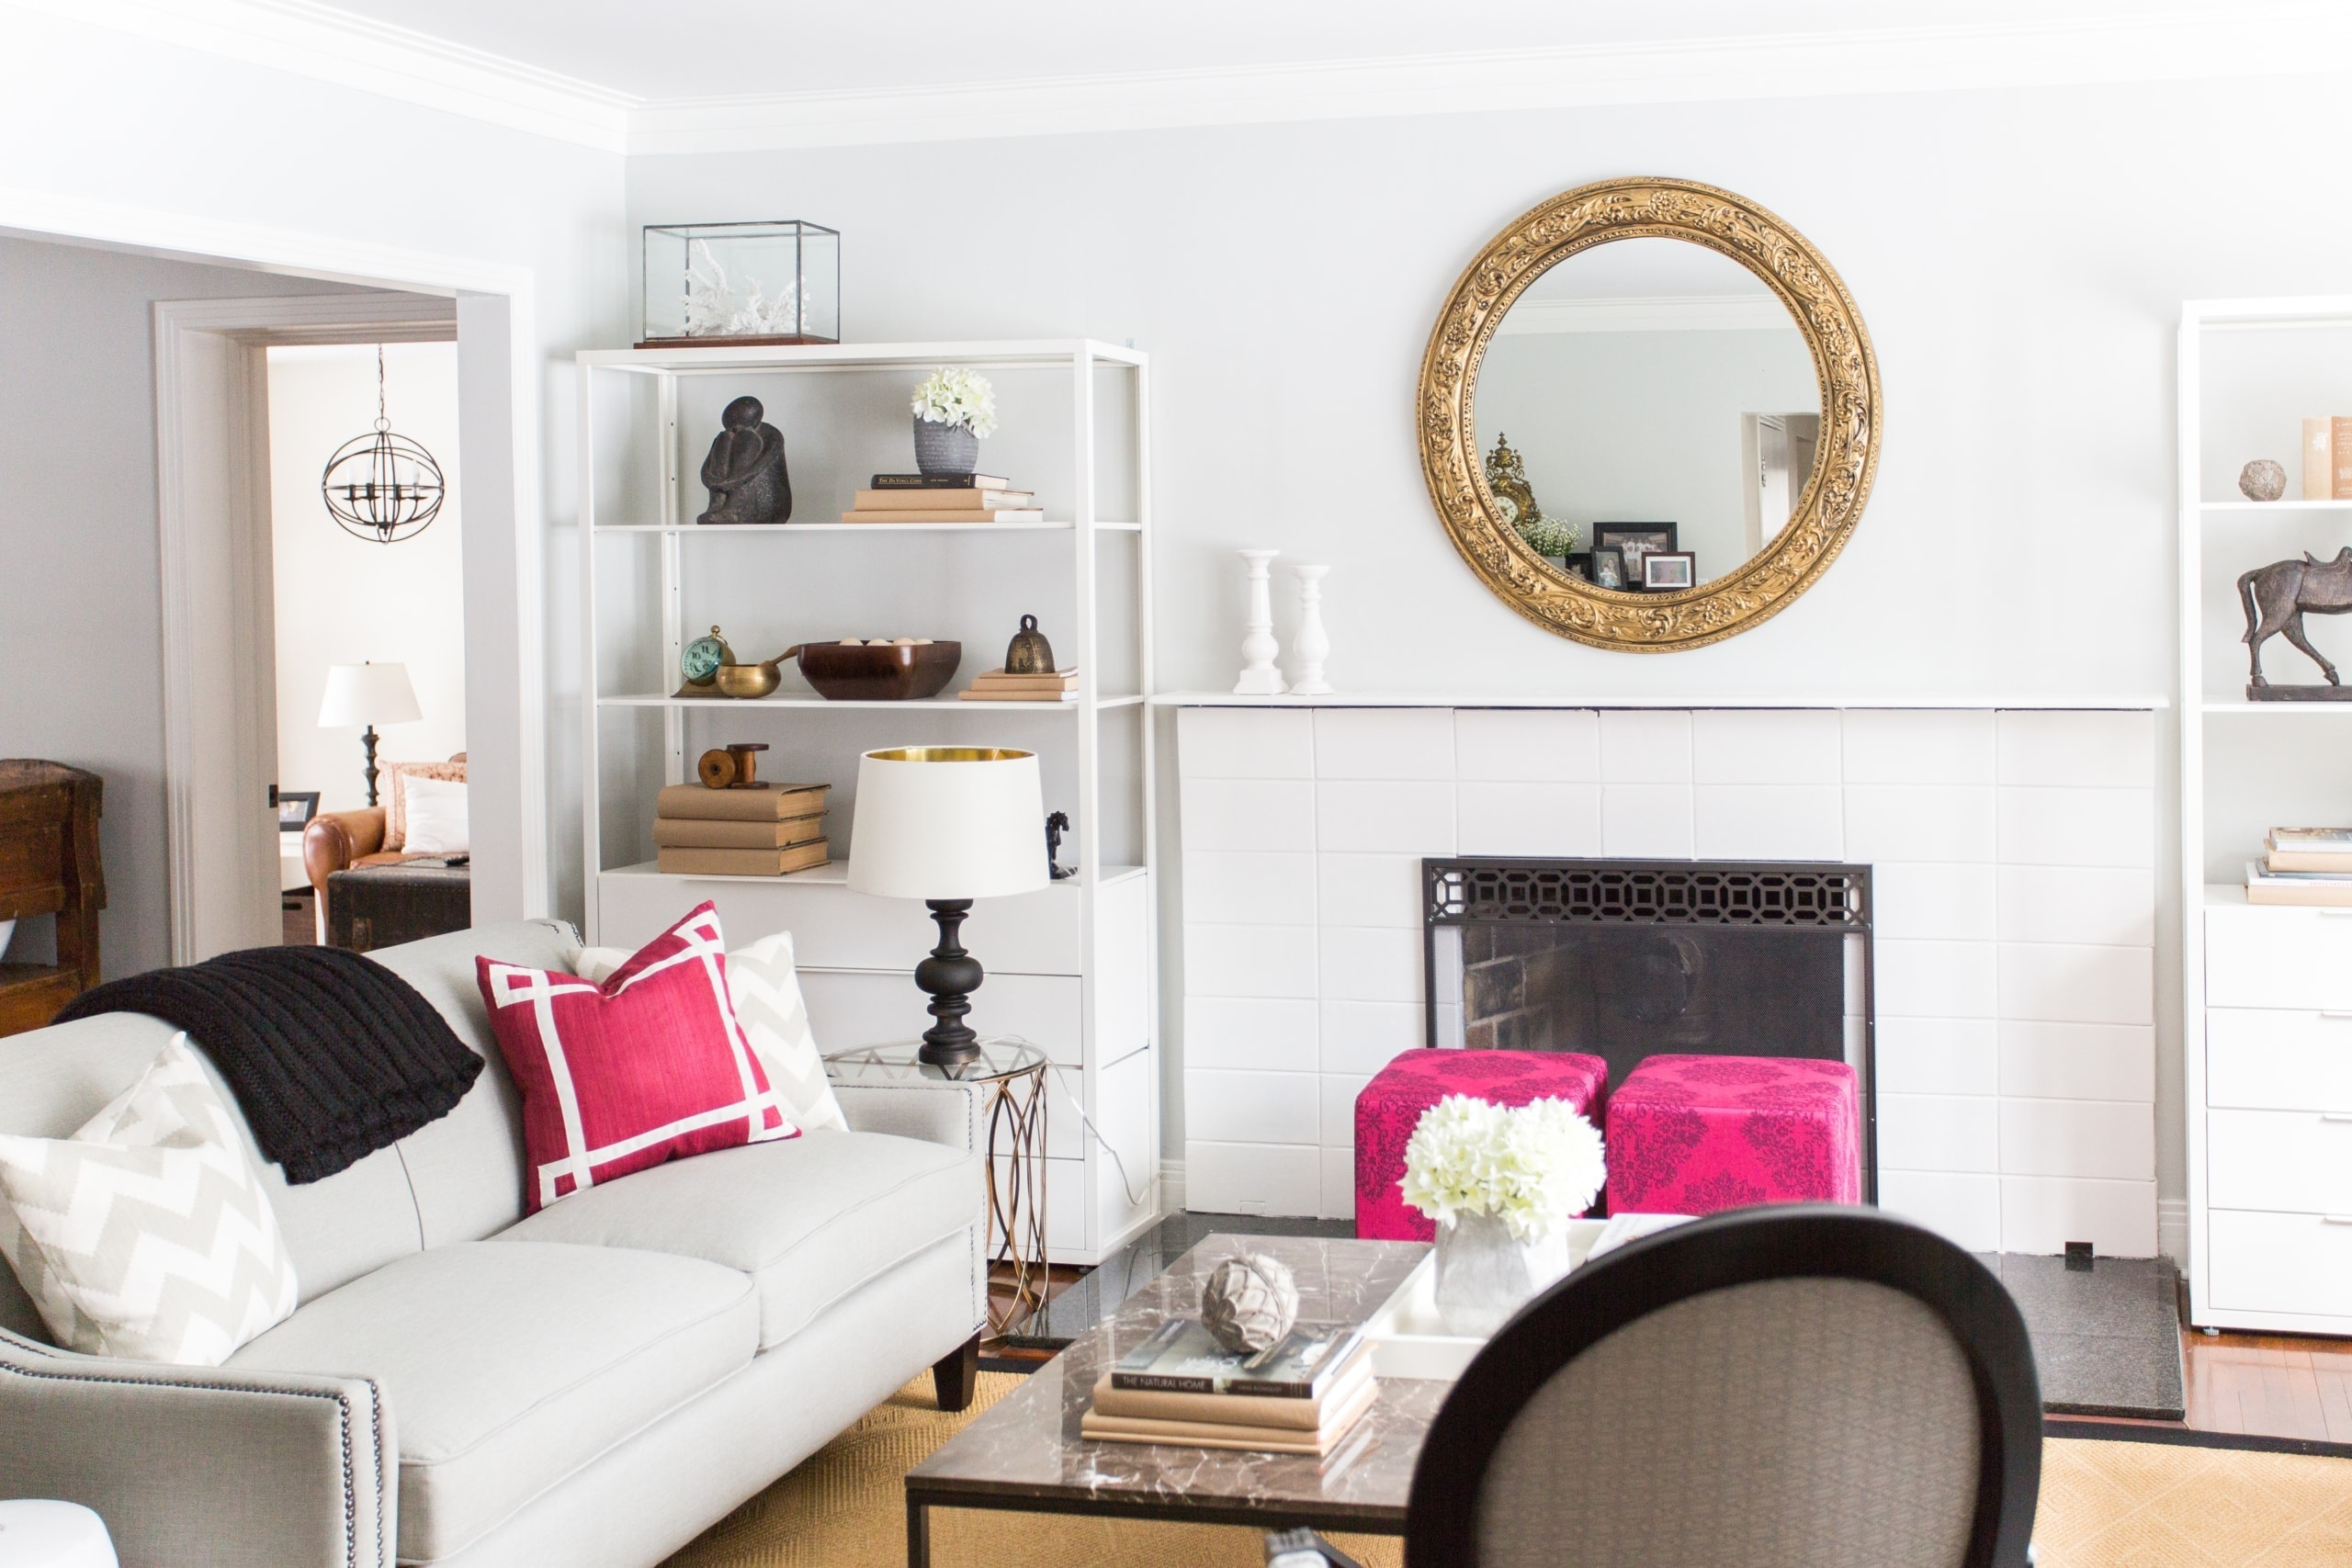 Large, open living room with pink stools next to the